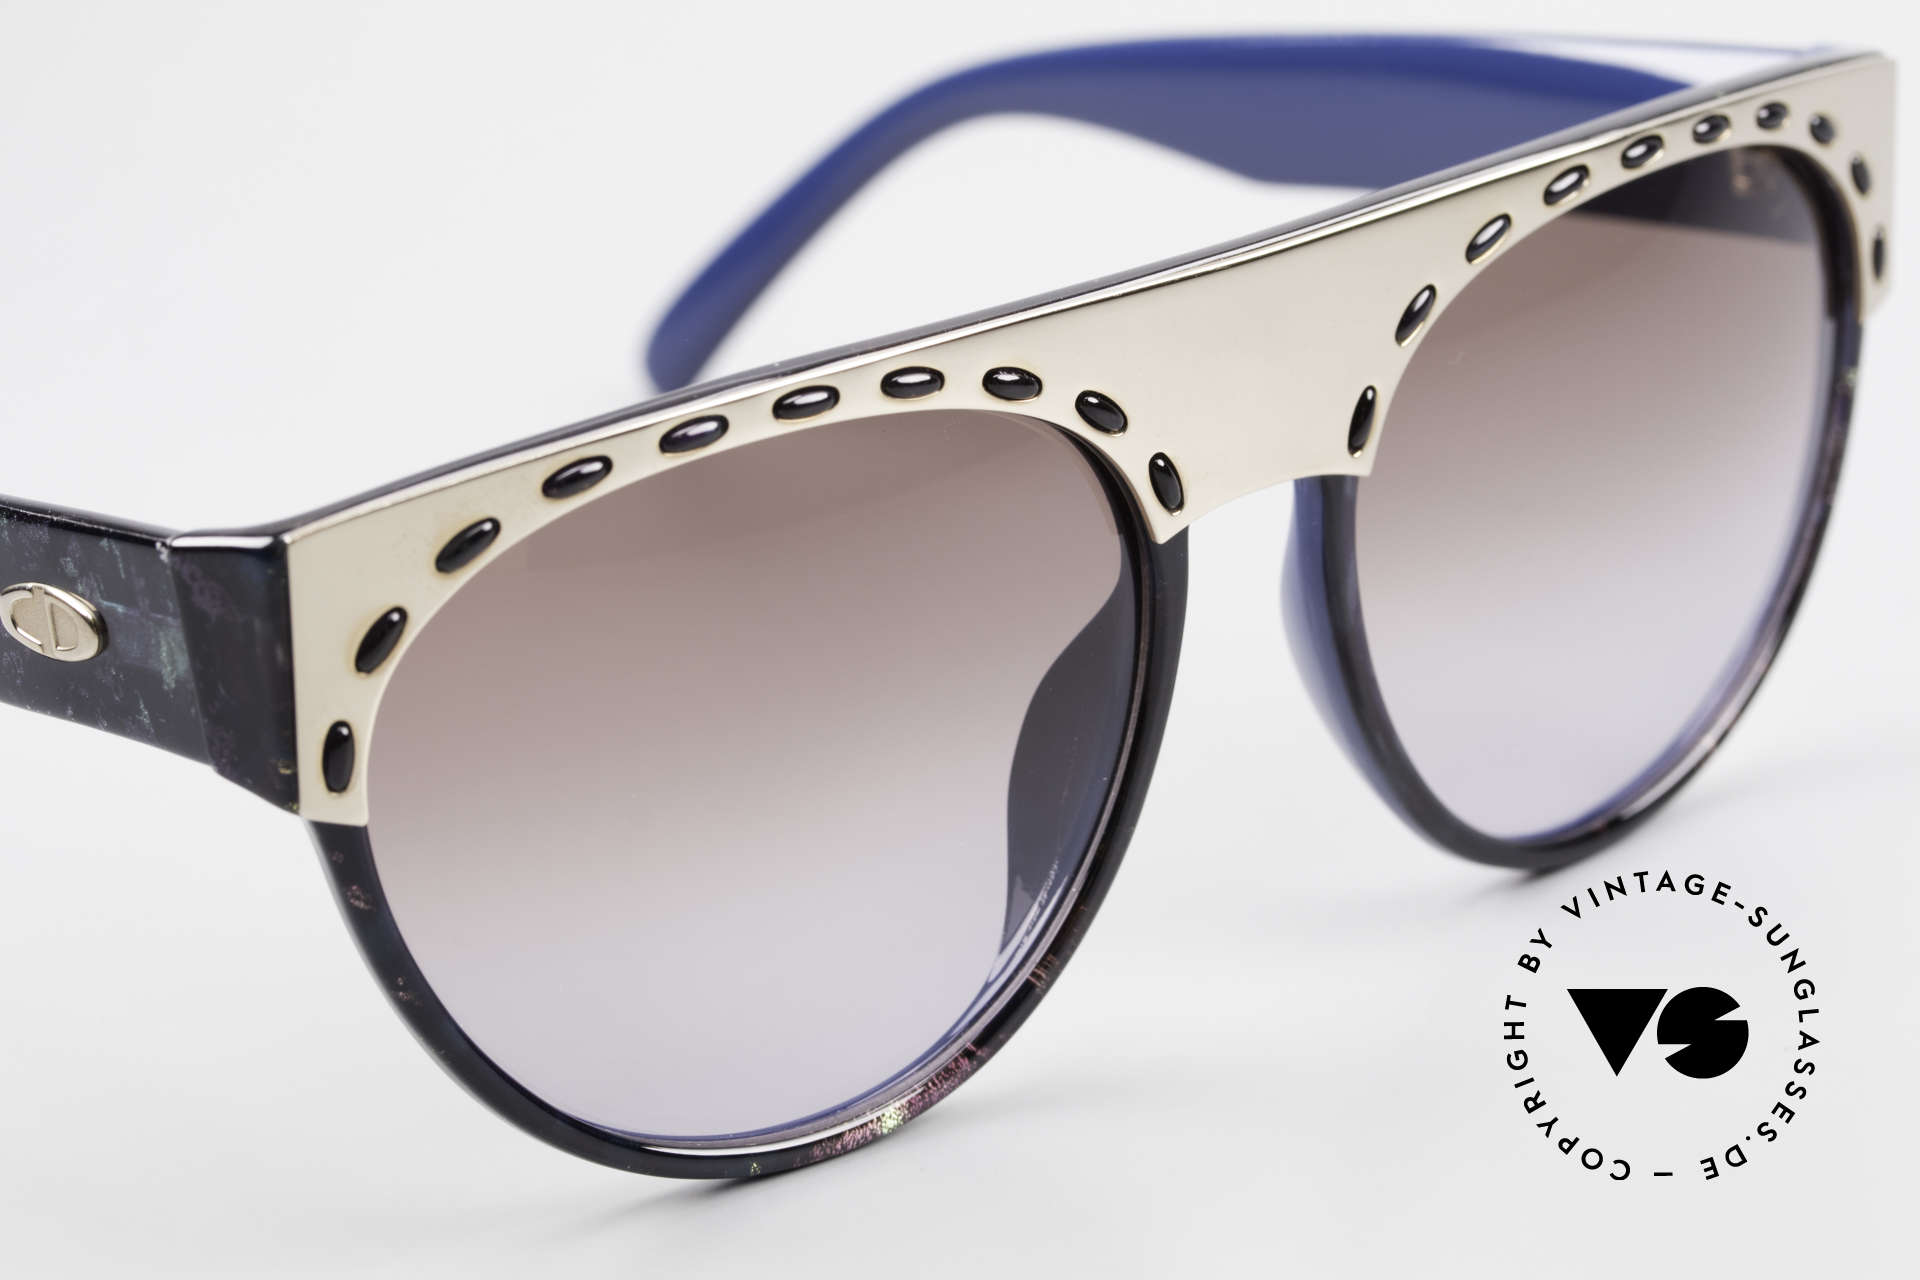 Christian Dior 2437 Vintage Ladies Sunglasses 80's, NO retro fashion; a 30 years old original, one of a kind!, Made for Women